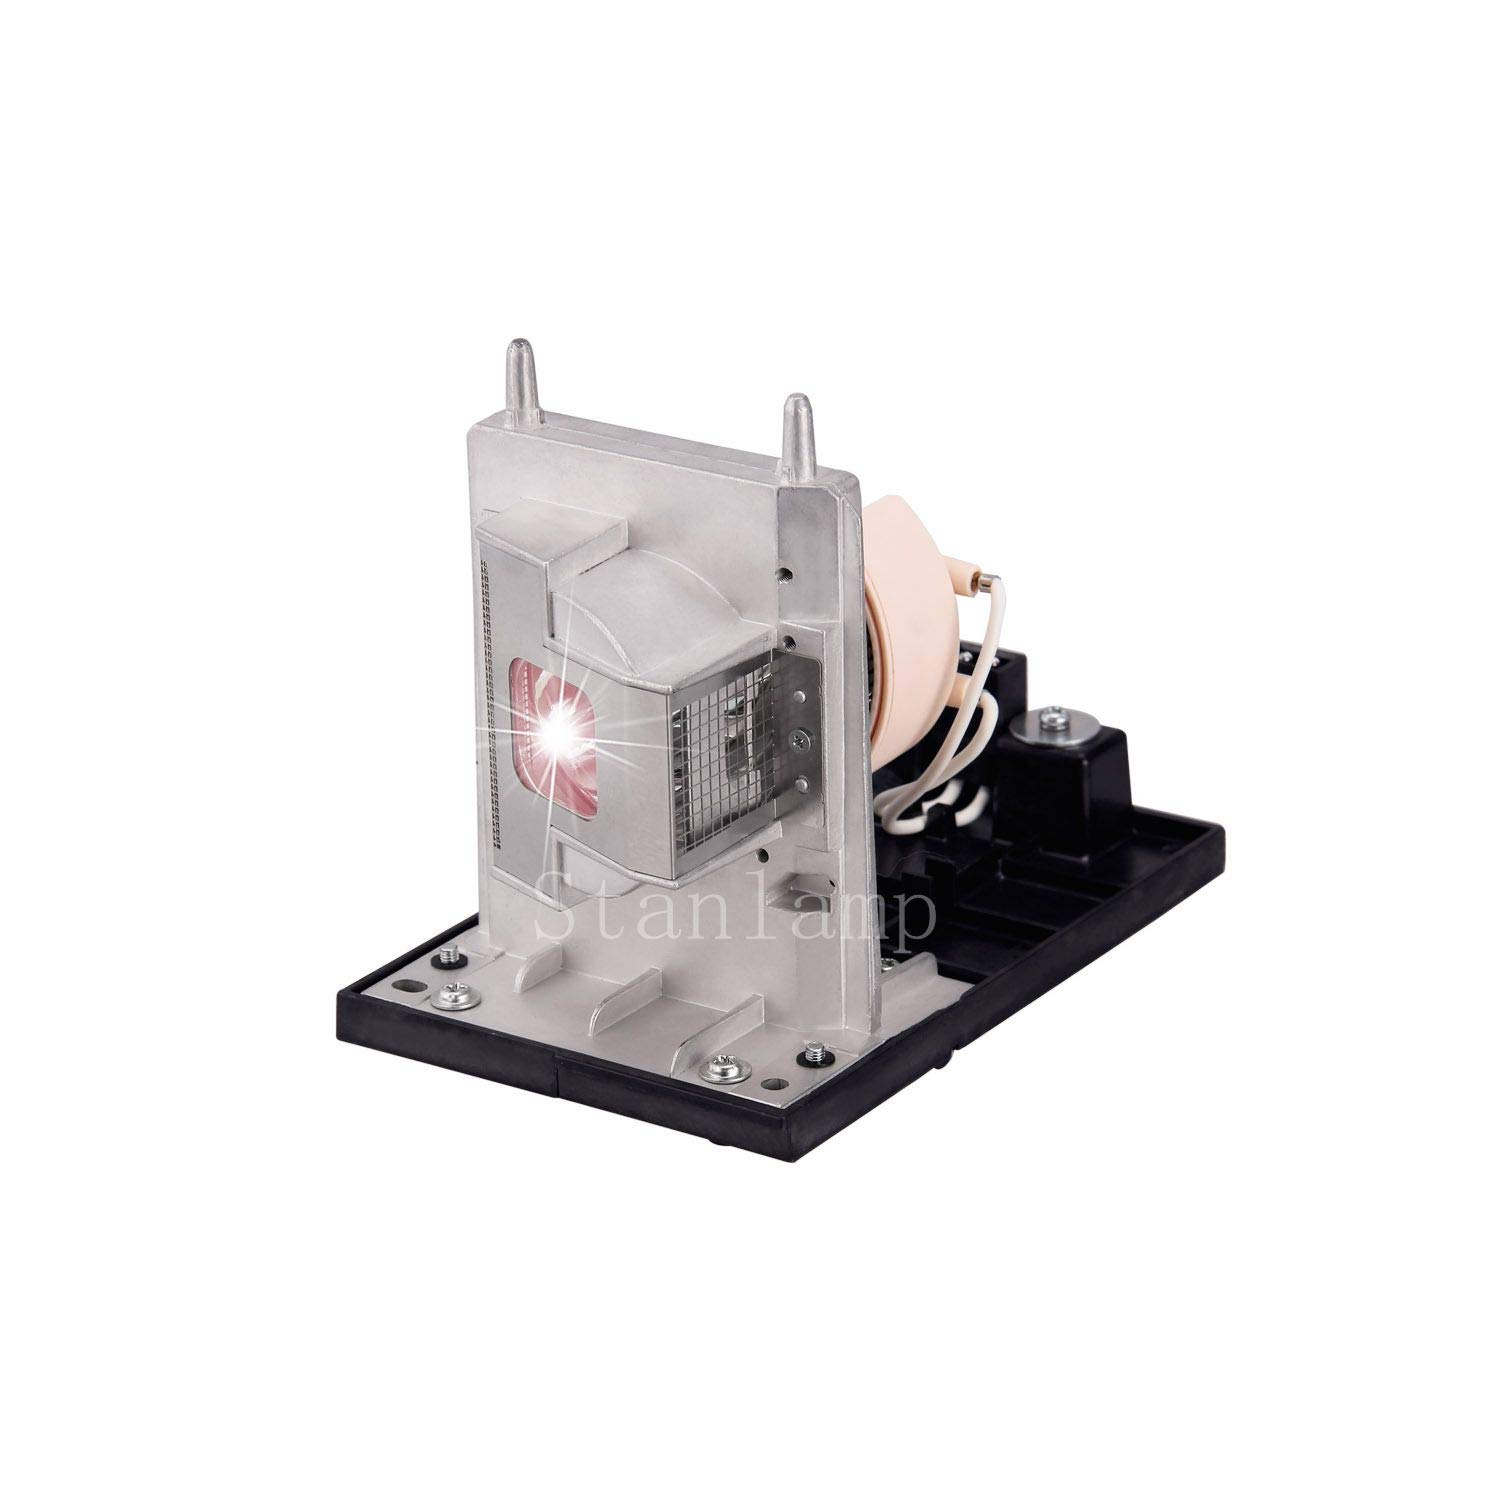 Stanlamp Premium Quality Replacement Projector Lamp For Smart Board 20-01175-20 With Housing